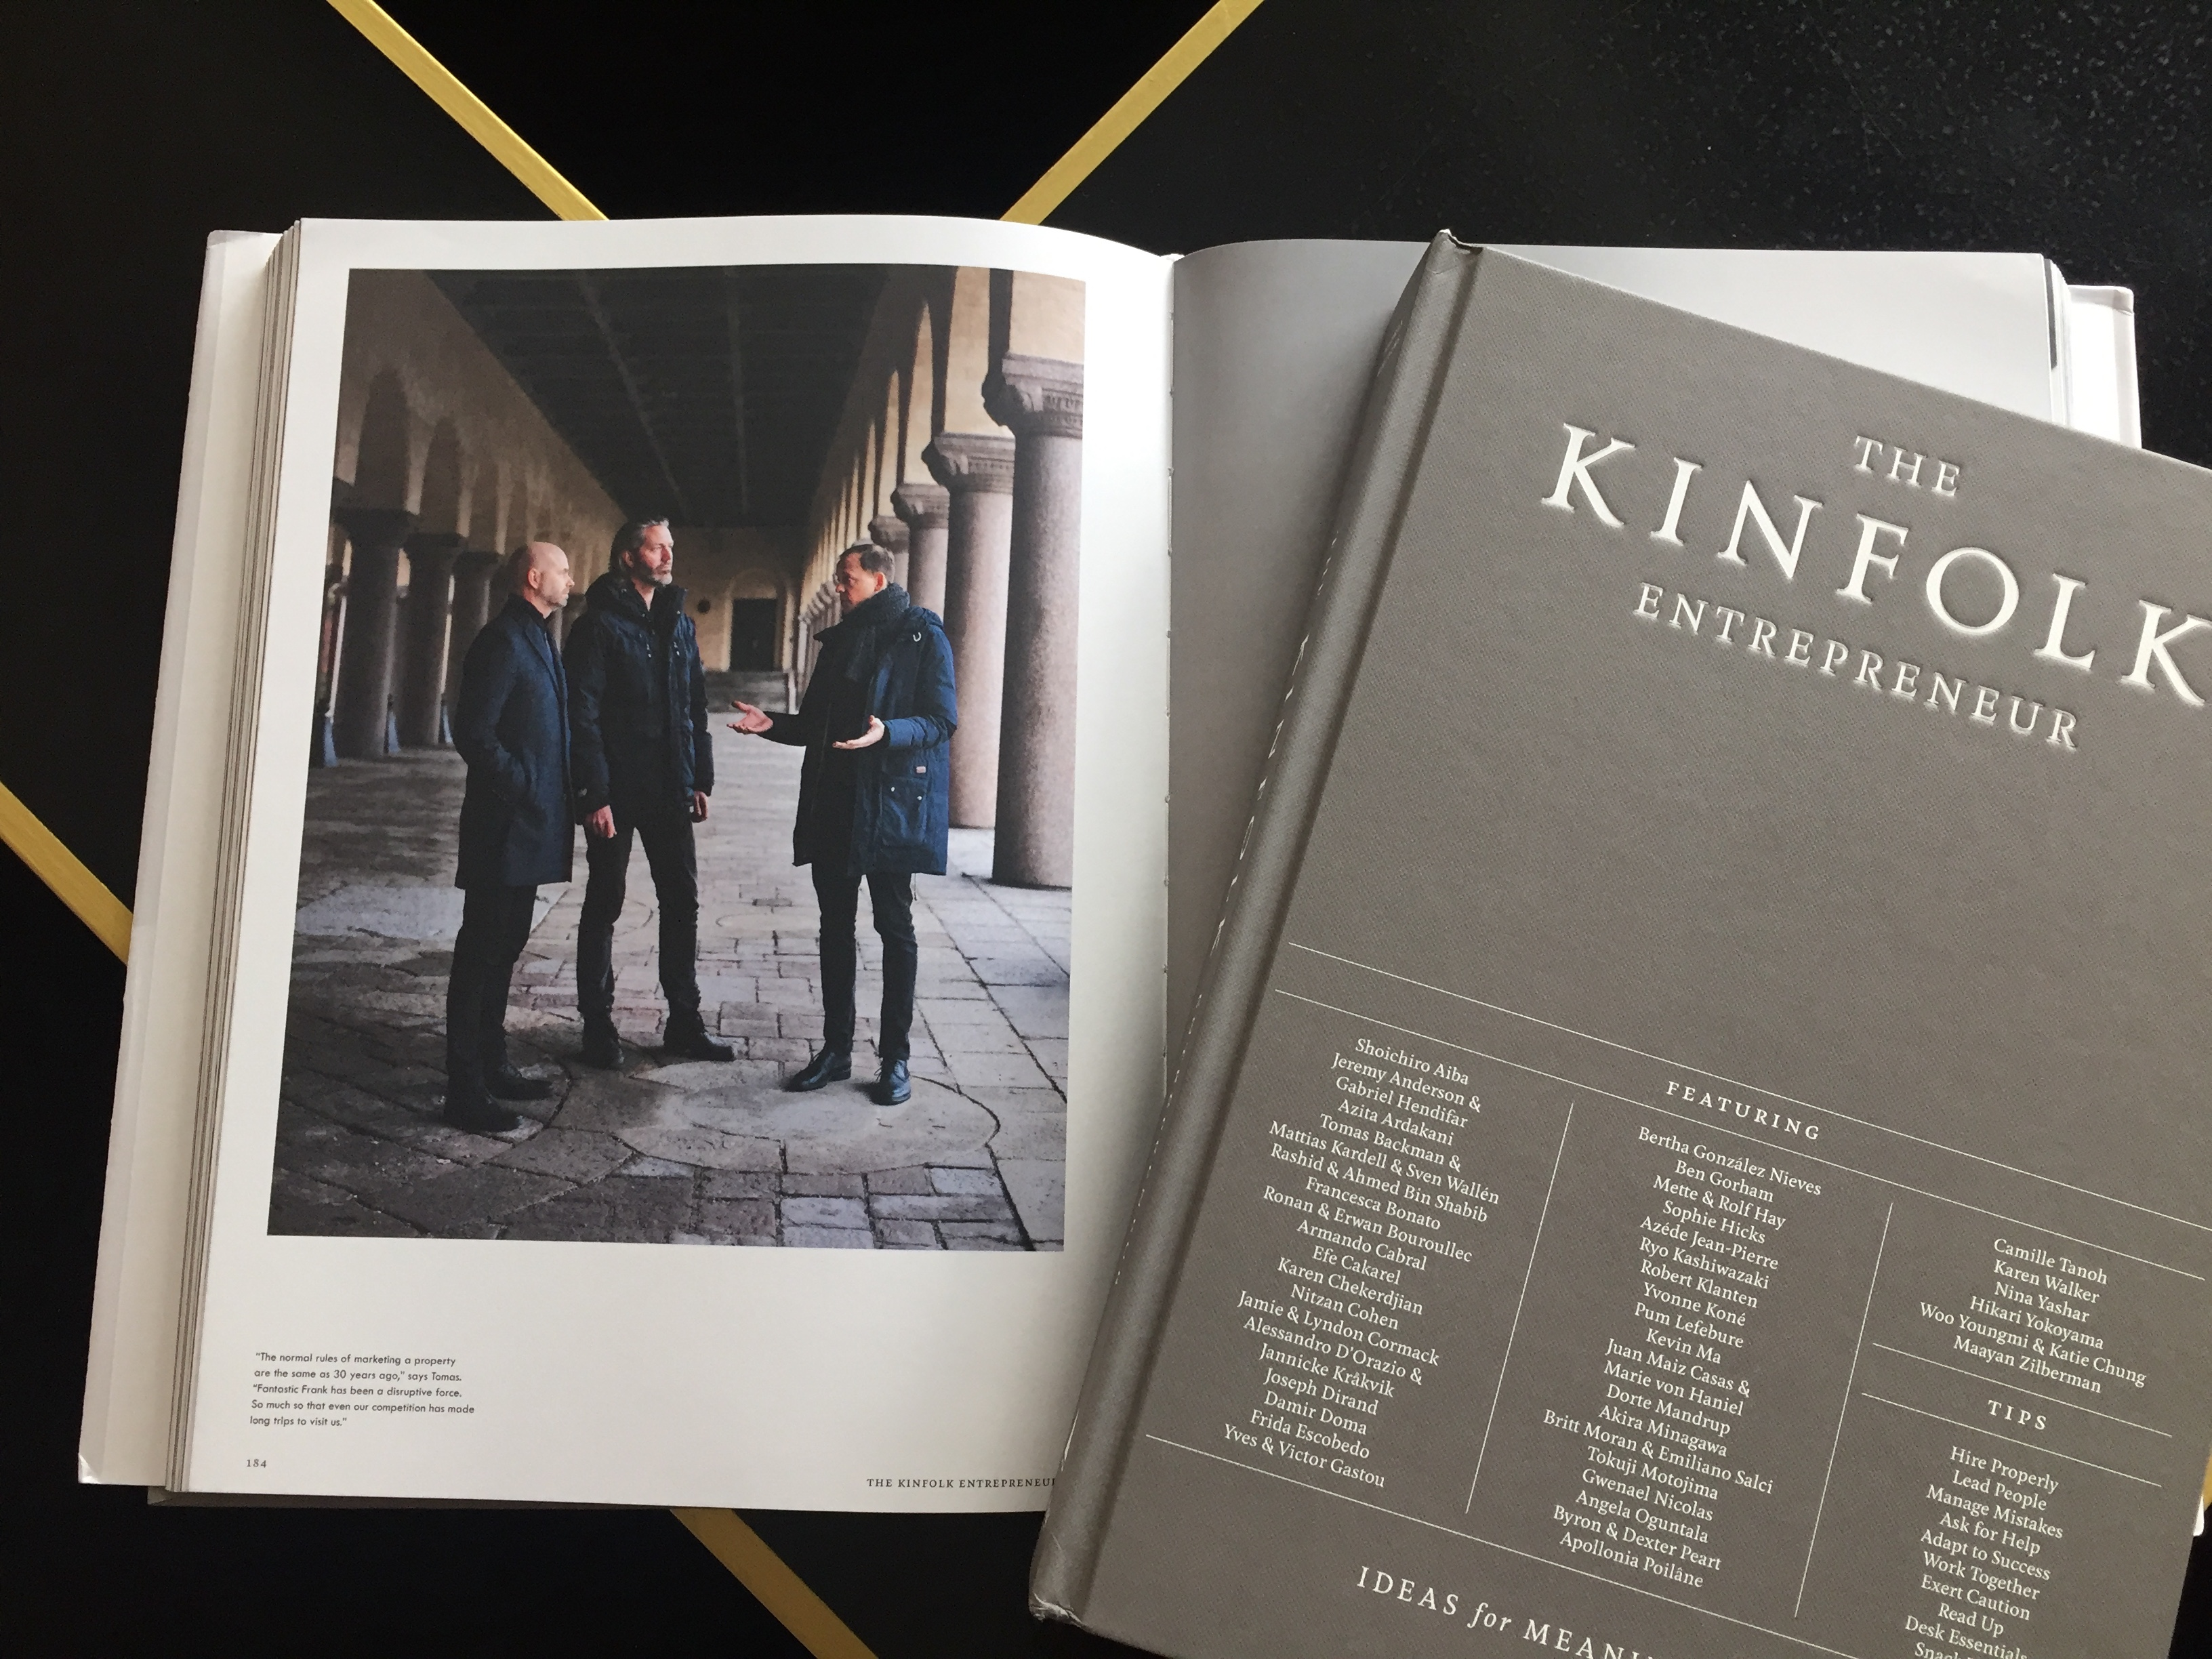 Kinfolk lists Fantastic Frank among 40 entrepreneurs tomas backman sven wallen mattias kardell